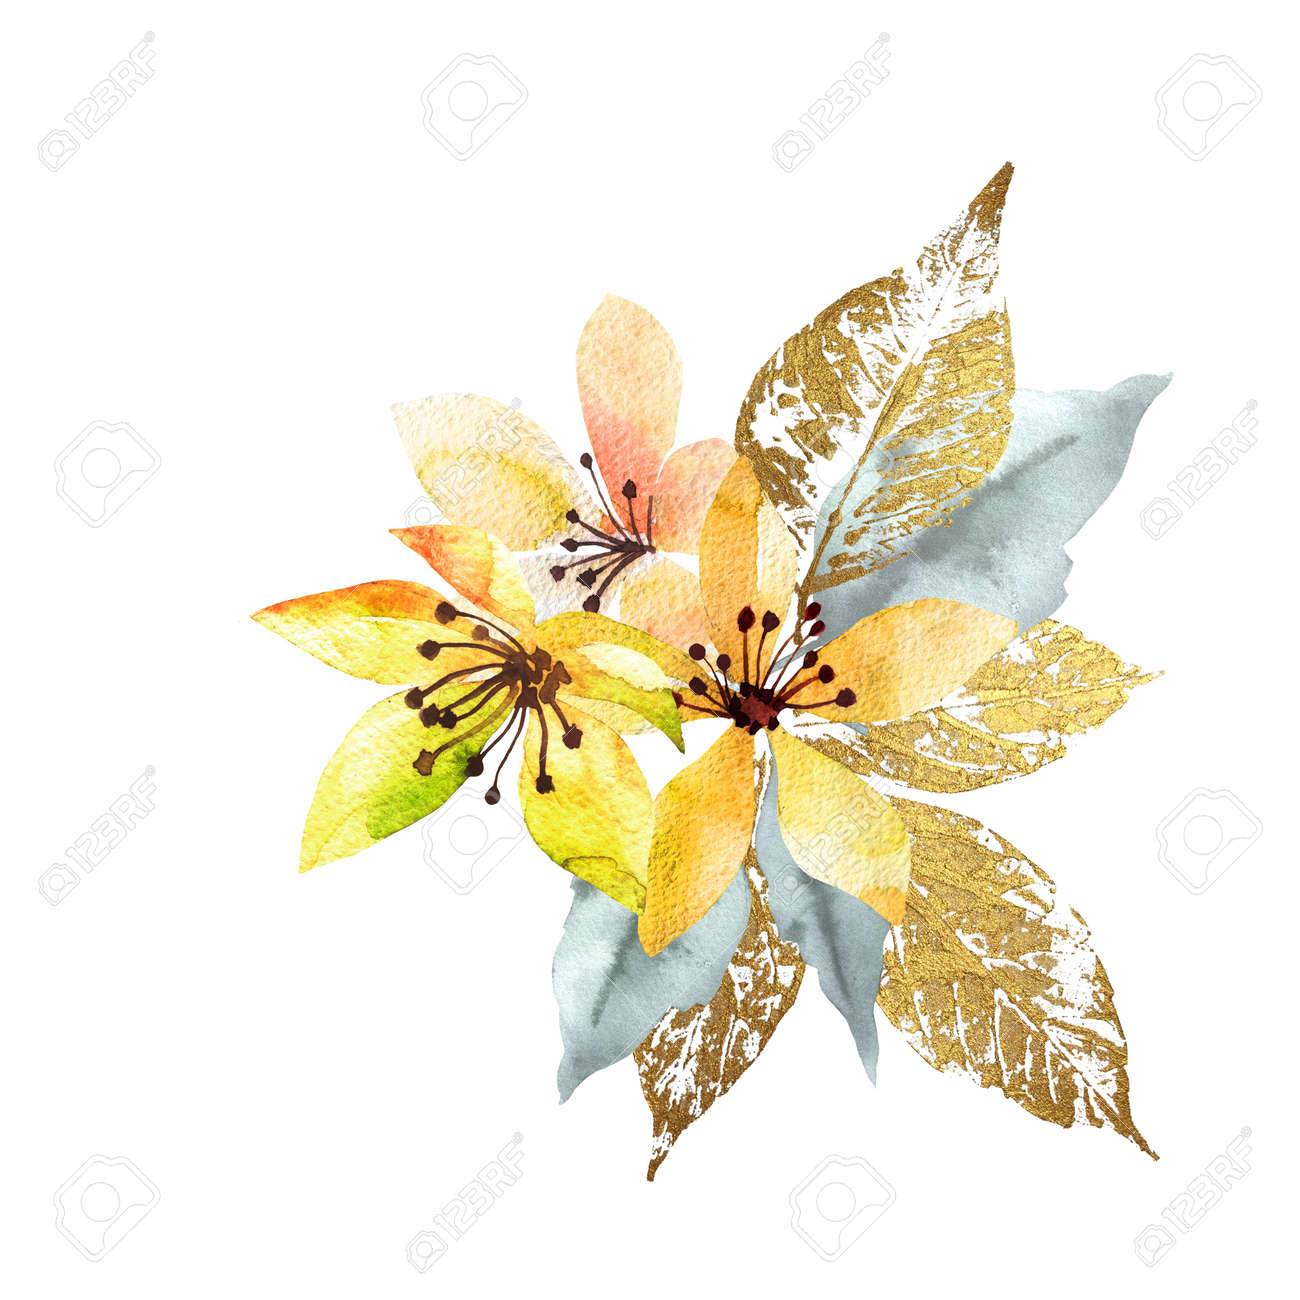 Bouquet flowers watercolor with leaves gold. Hand drawn style watercolor. Nice summer background. - 169460680